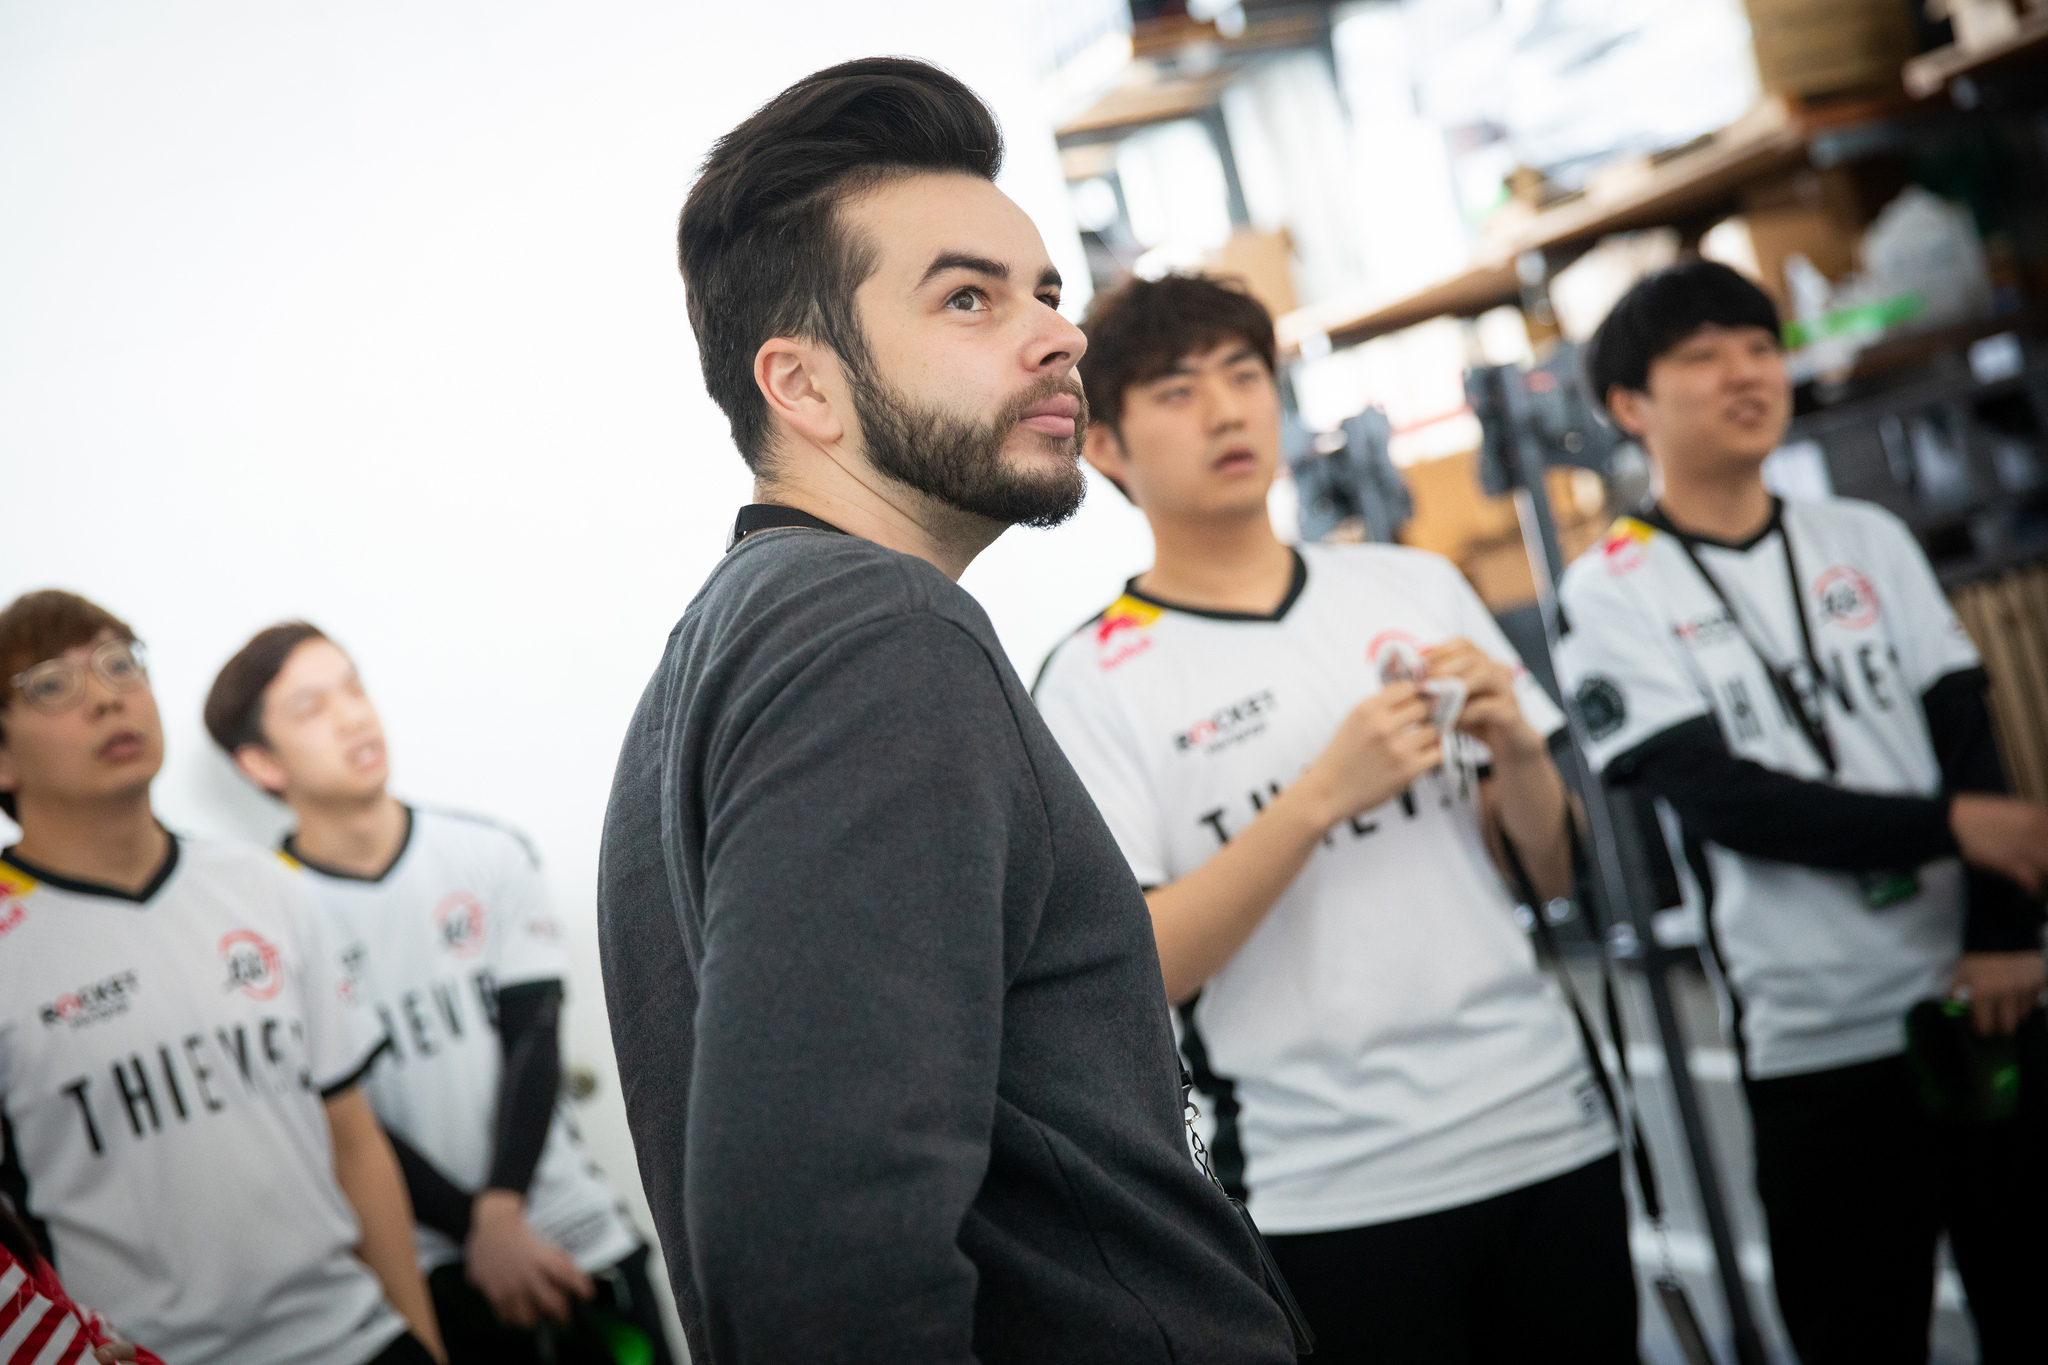 Nadeshot gave $50k to random people on Twitter—and it's still going image